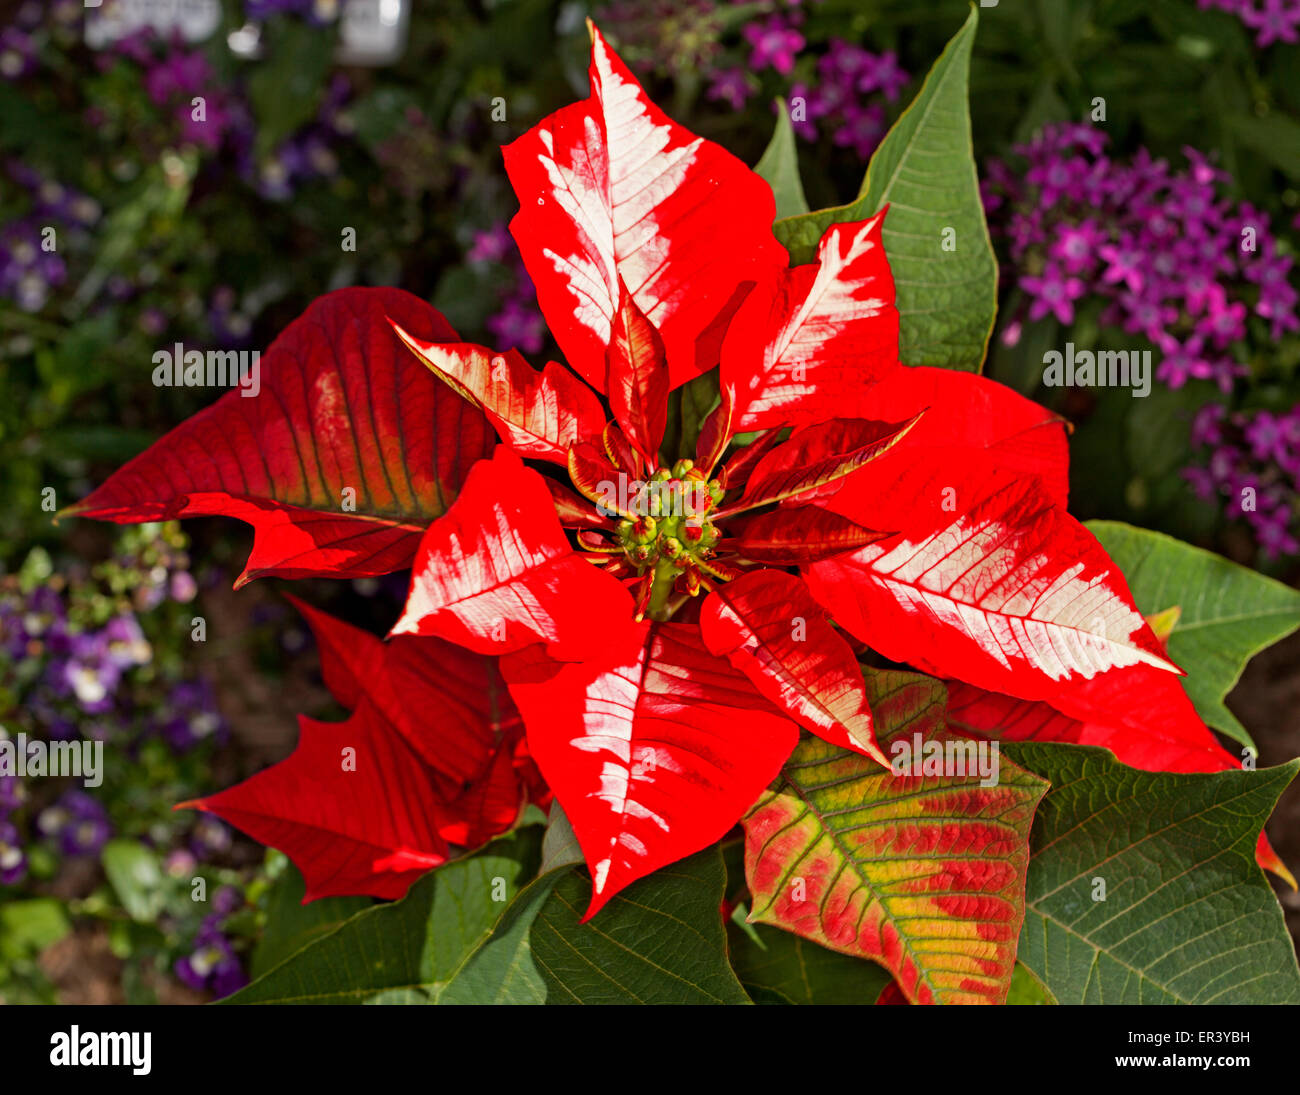 Spectacular And Unusual Vivid Red Bracts Splashed With White Of